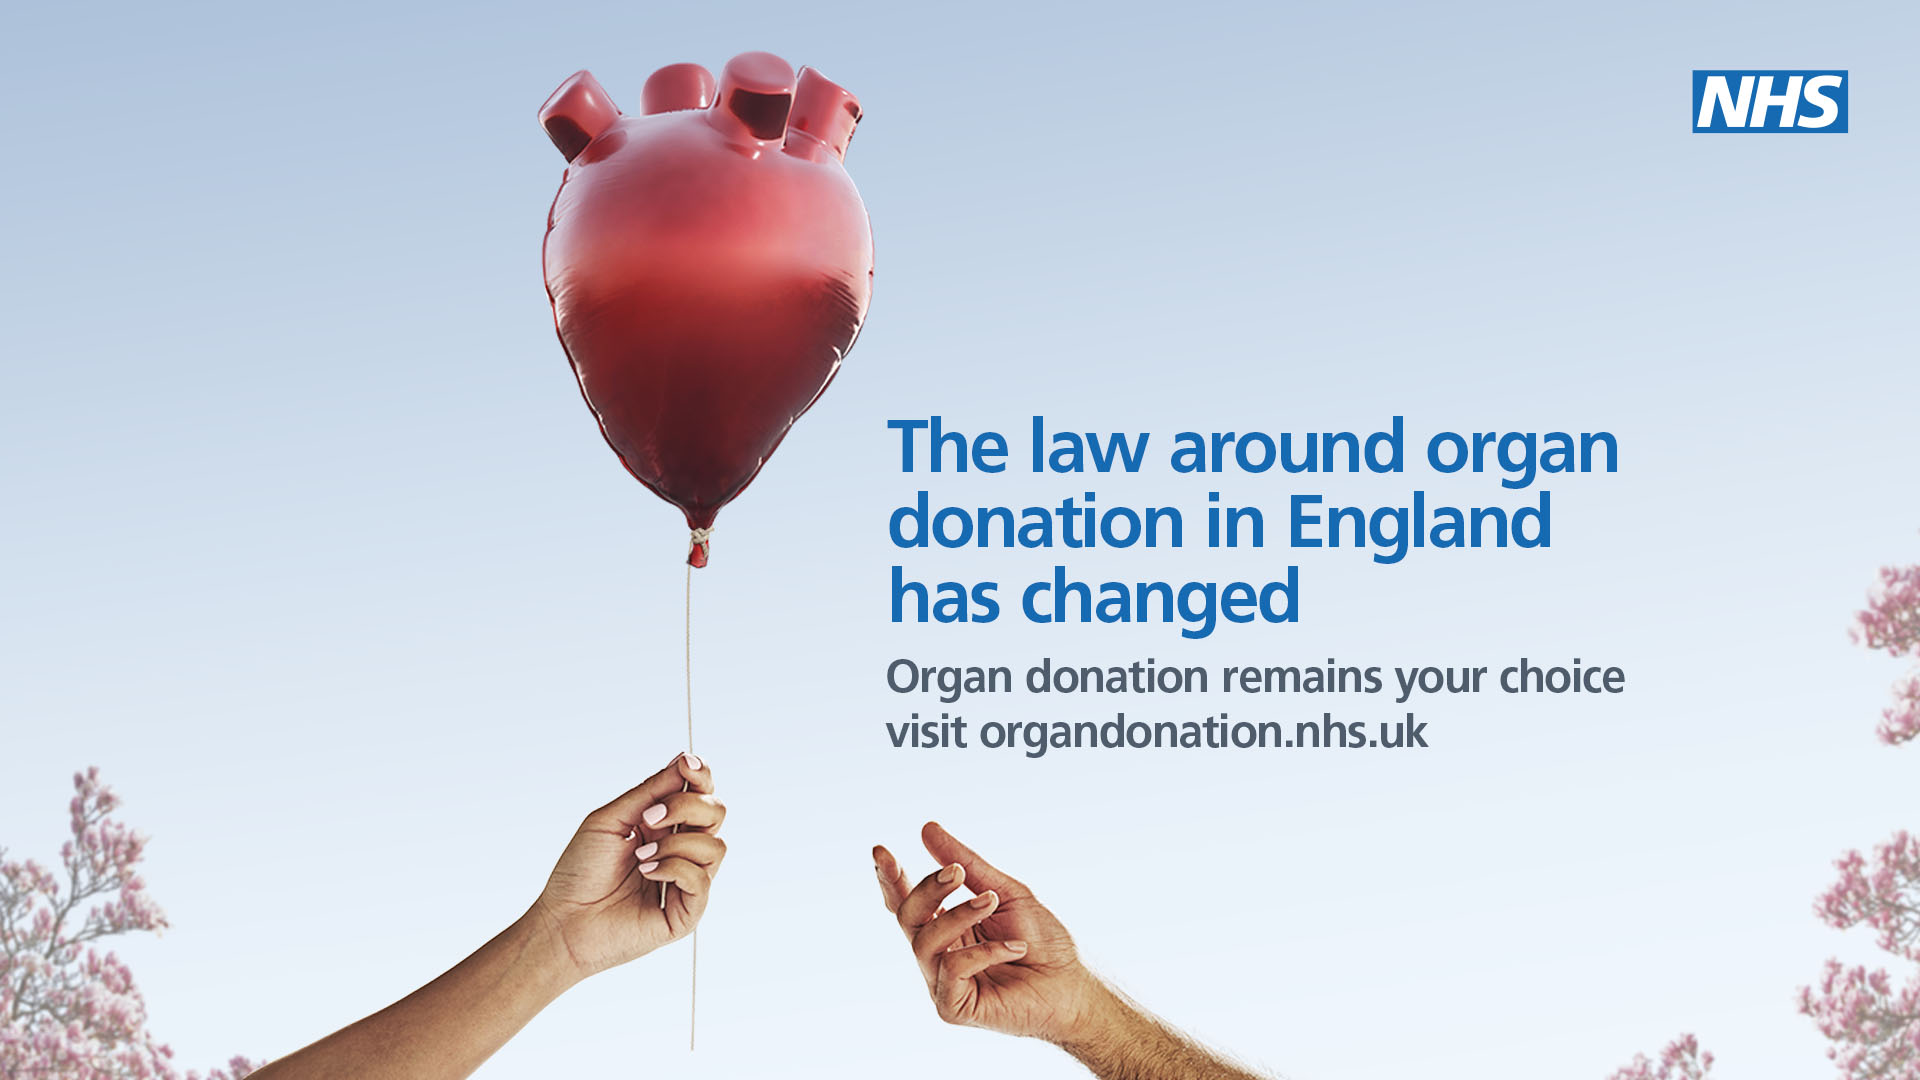 The law around organ donation in England has changed.  Organ donation remains your choice visit organdonation.org.uk